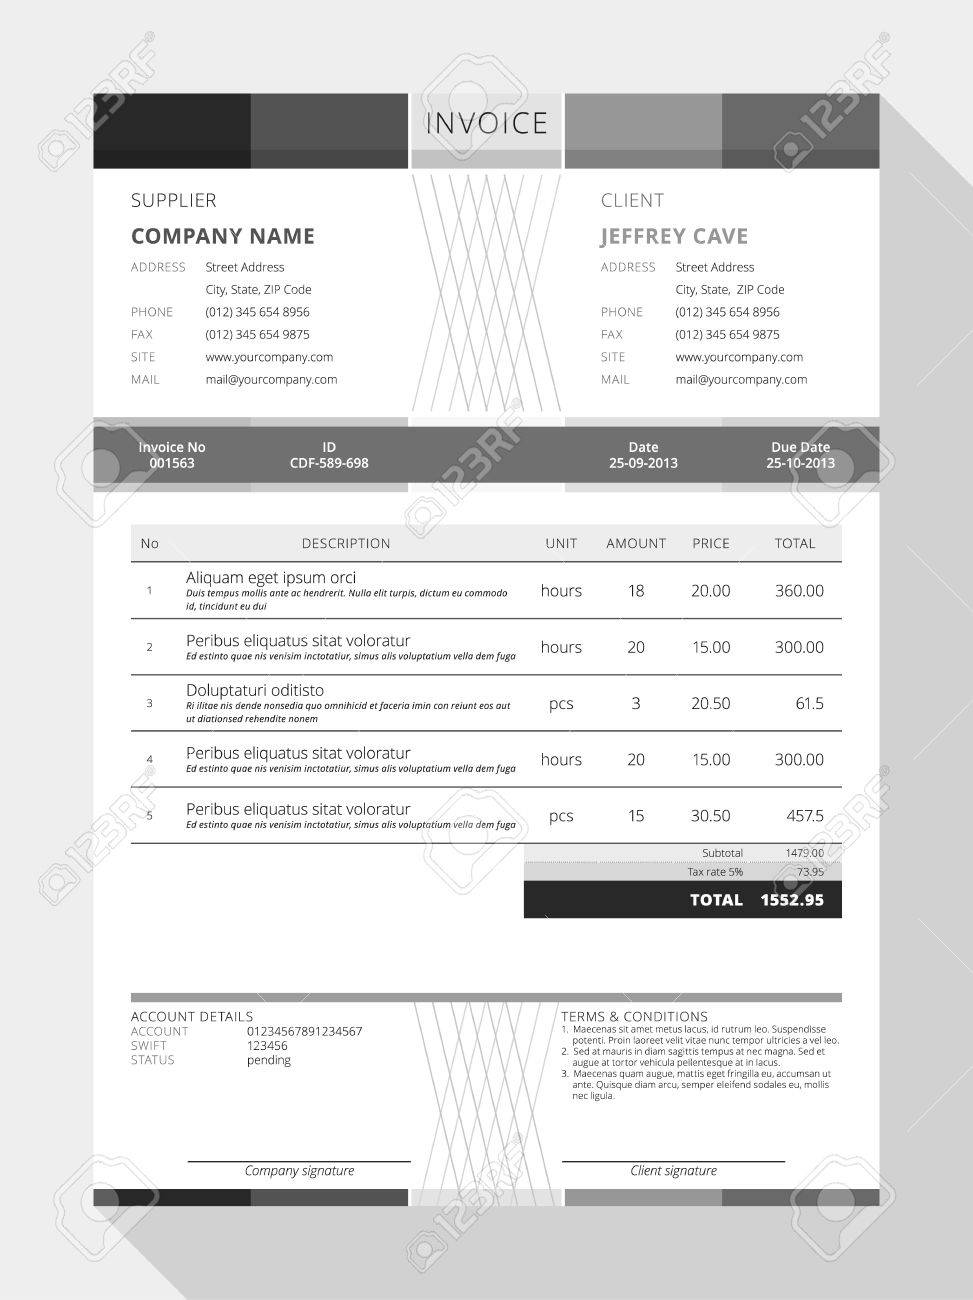 Ebitus  Personable Design An Invoice  Professional Graphic Design Invoice  With Lovely Vector Customizable Invoice Form Template Design Vector   Design An Invoice With Extraordinary Acura Ilx Invoice Also Photographer Invoice In Addition Proma Invoice And In The Invoice Or On The Invoice As Well As Sample Of Export Invoice Additionally Proventure Invoices From Happytomco With Ebitus  Lovely Design An Invoice  Professional Graphic Design Invoice  With Extraordinary Vector Customizable Invoice Form Template Design Vector   Design An Invoice And Personable Acura Ilx Invoice Also Photographer Invoice In Addition Proma Invoice From Happytomco